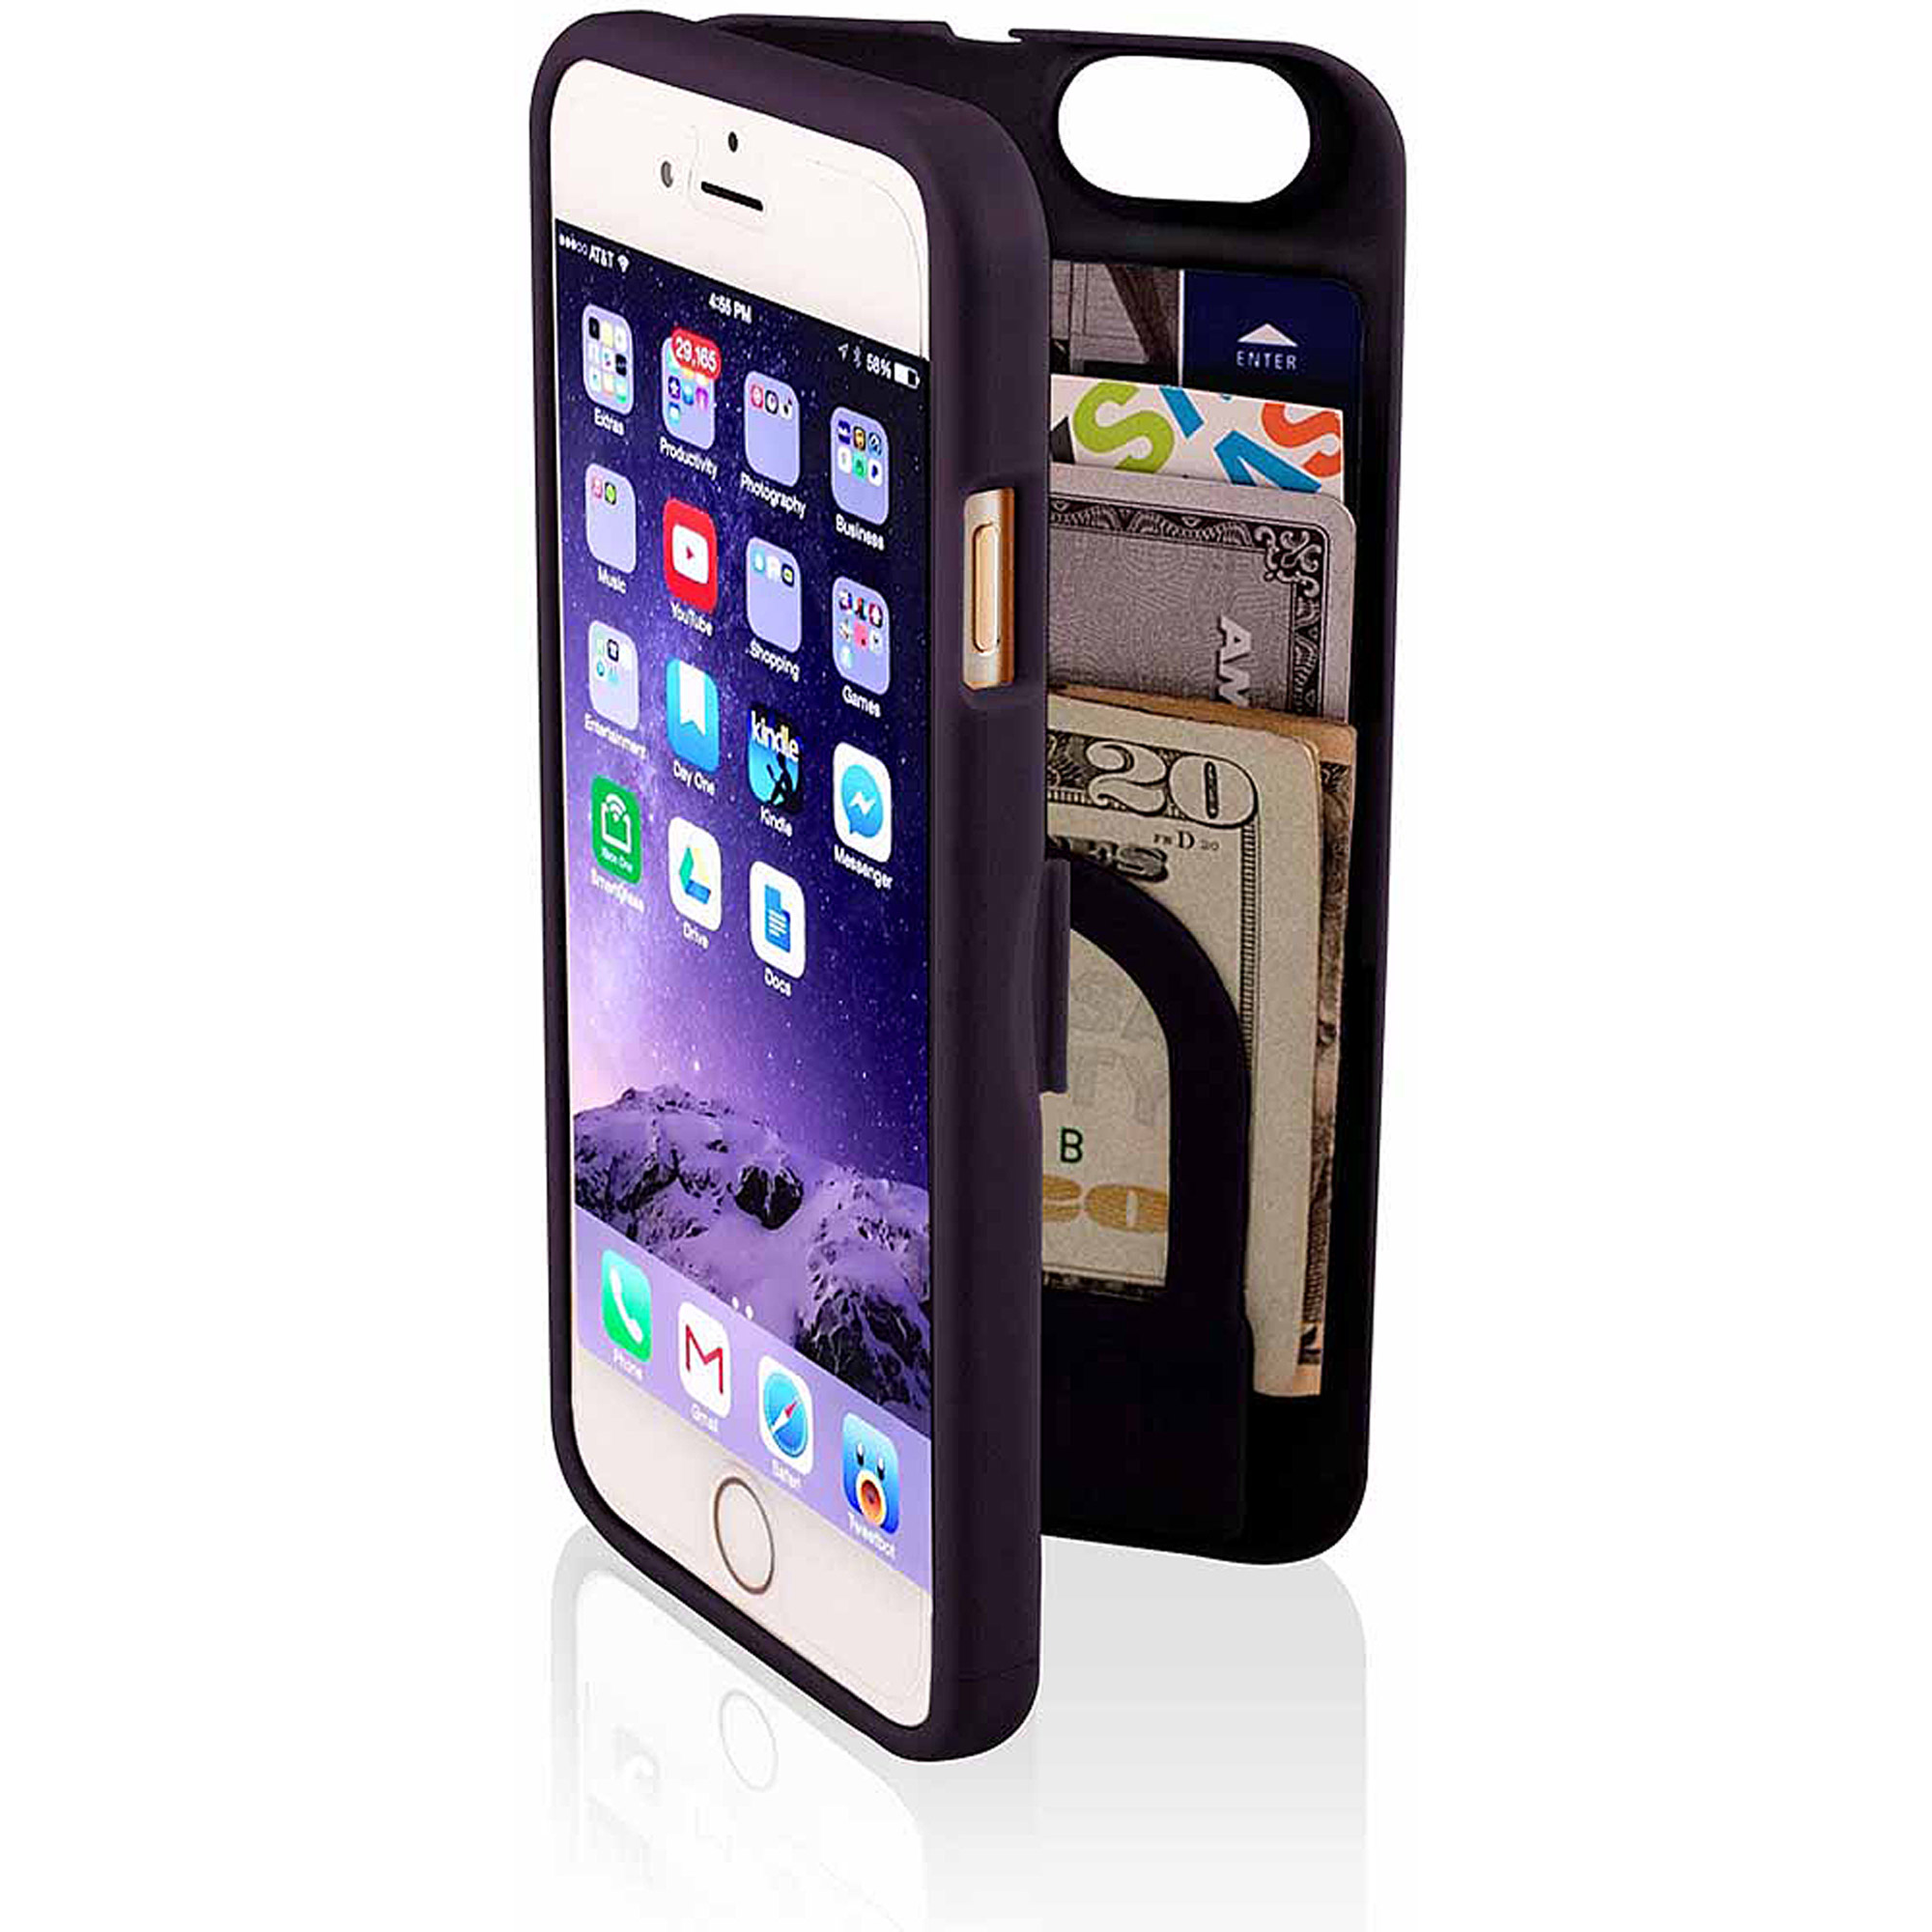 iphone 6 case free delivery